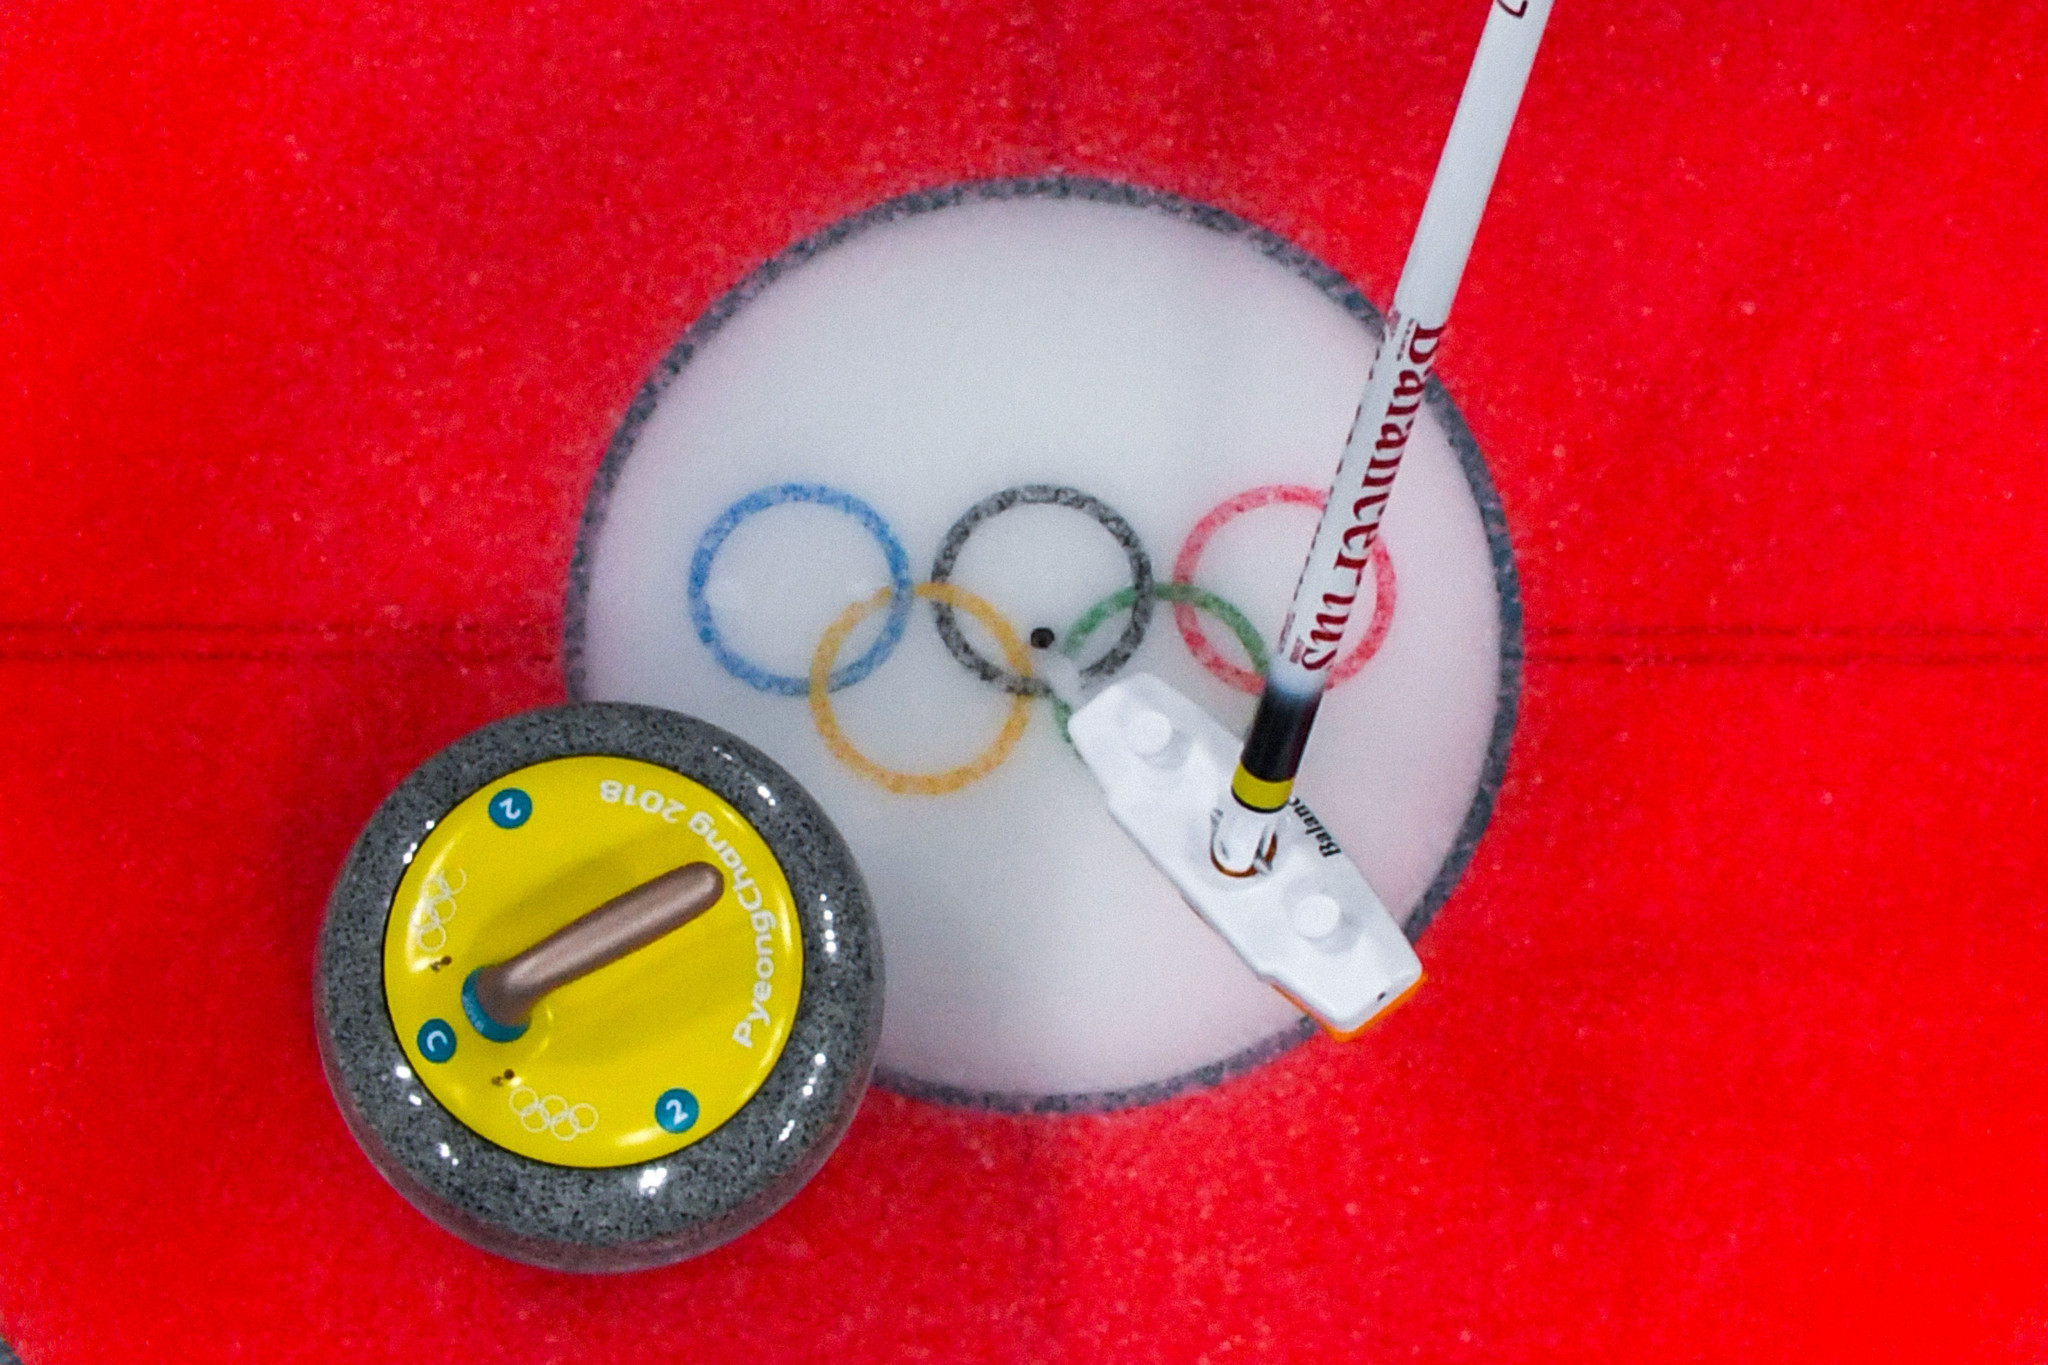 Five men's teams secure spots in next round of curling Pre-Olympic Qualification Event